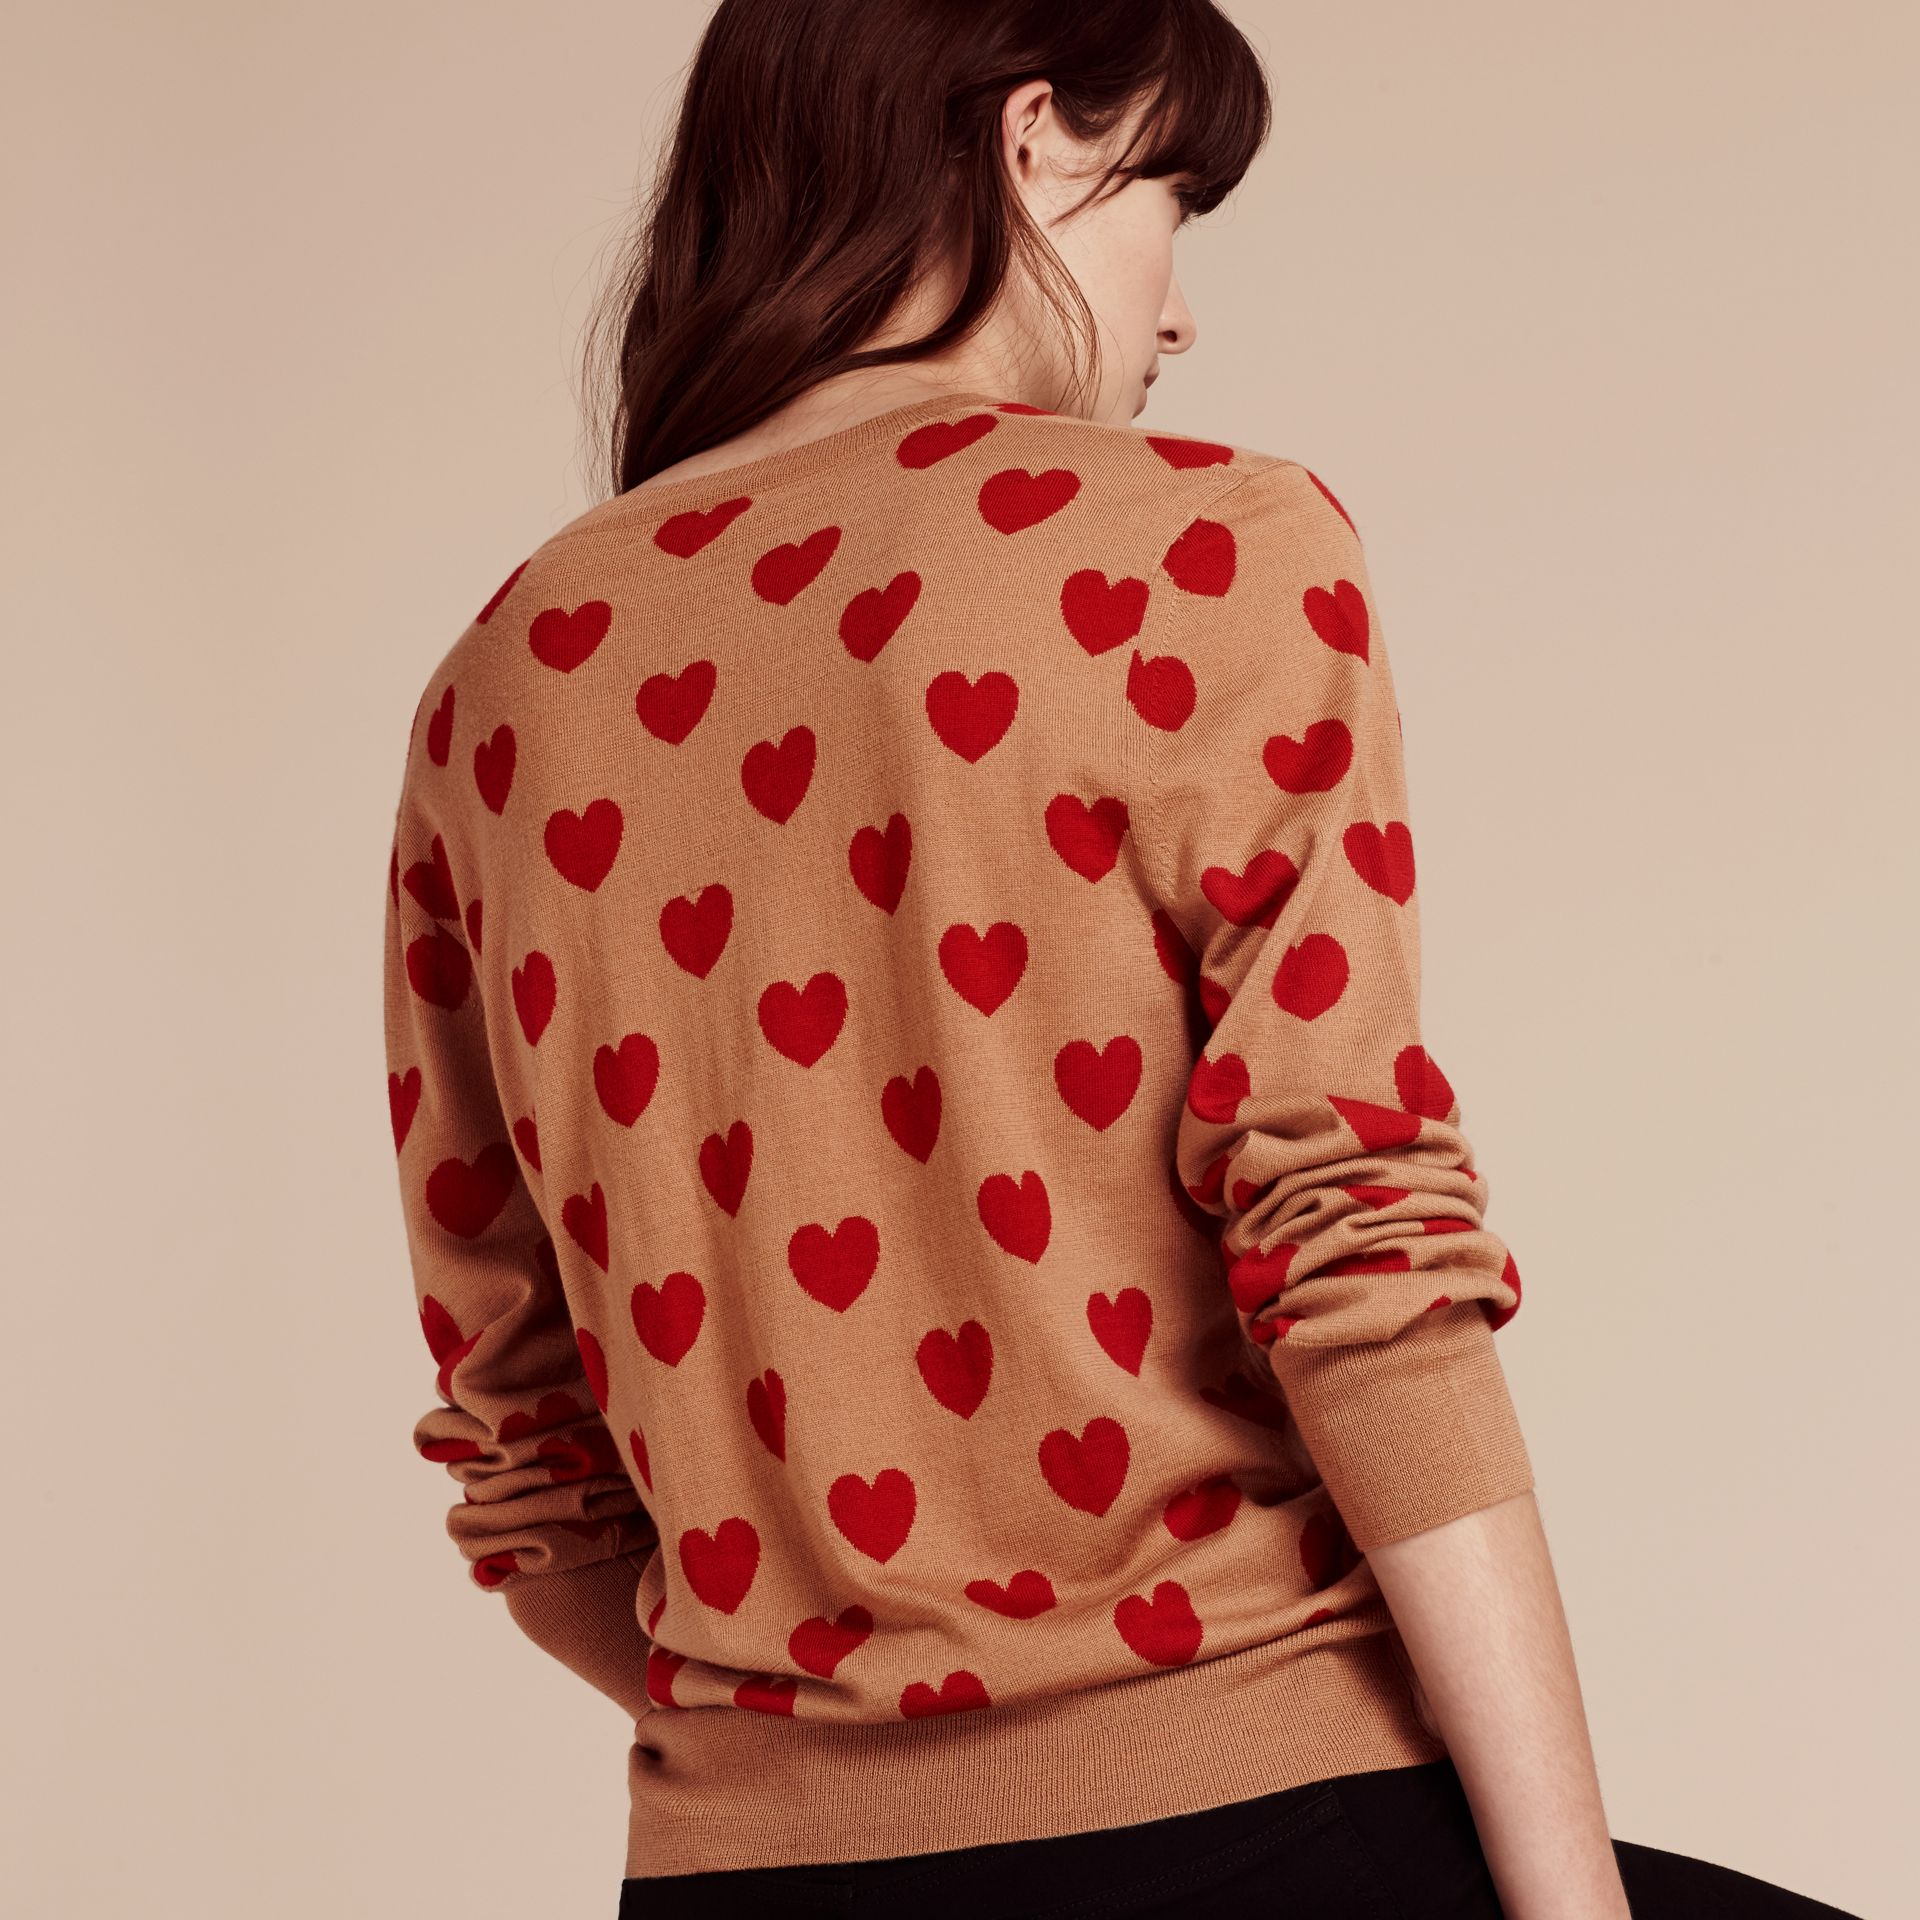 Heart Intarsia Merino Wool Sweater in Camel - Women | Burberry - gallery image 3